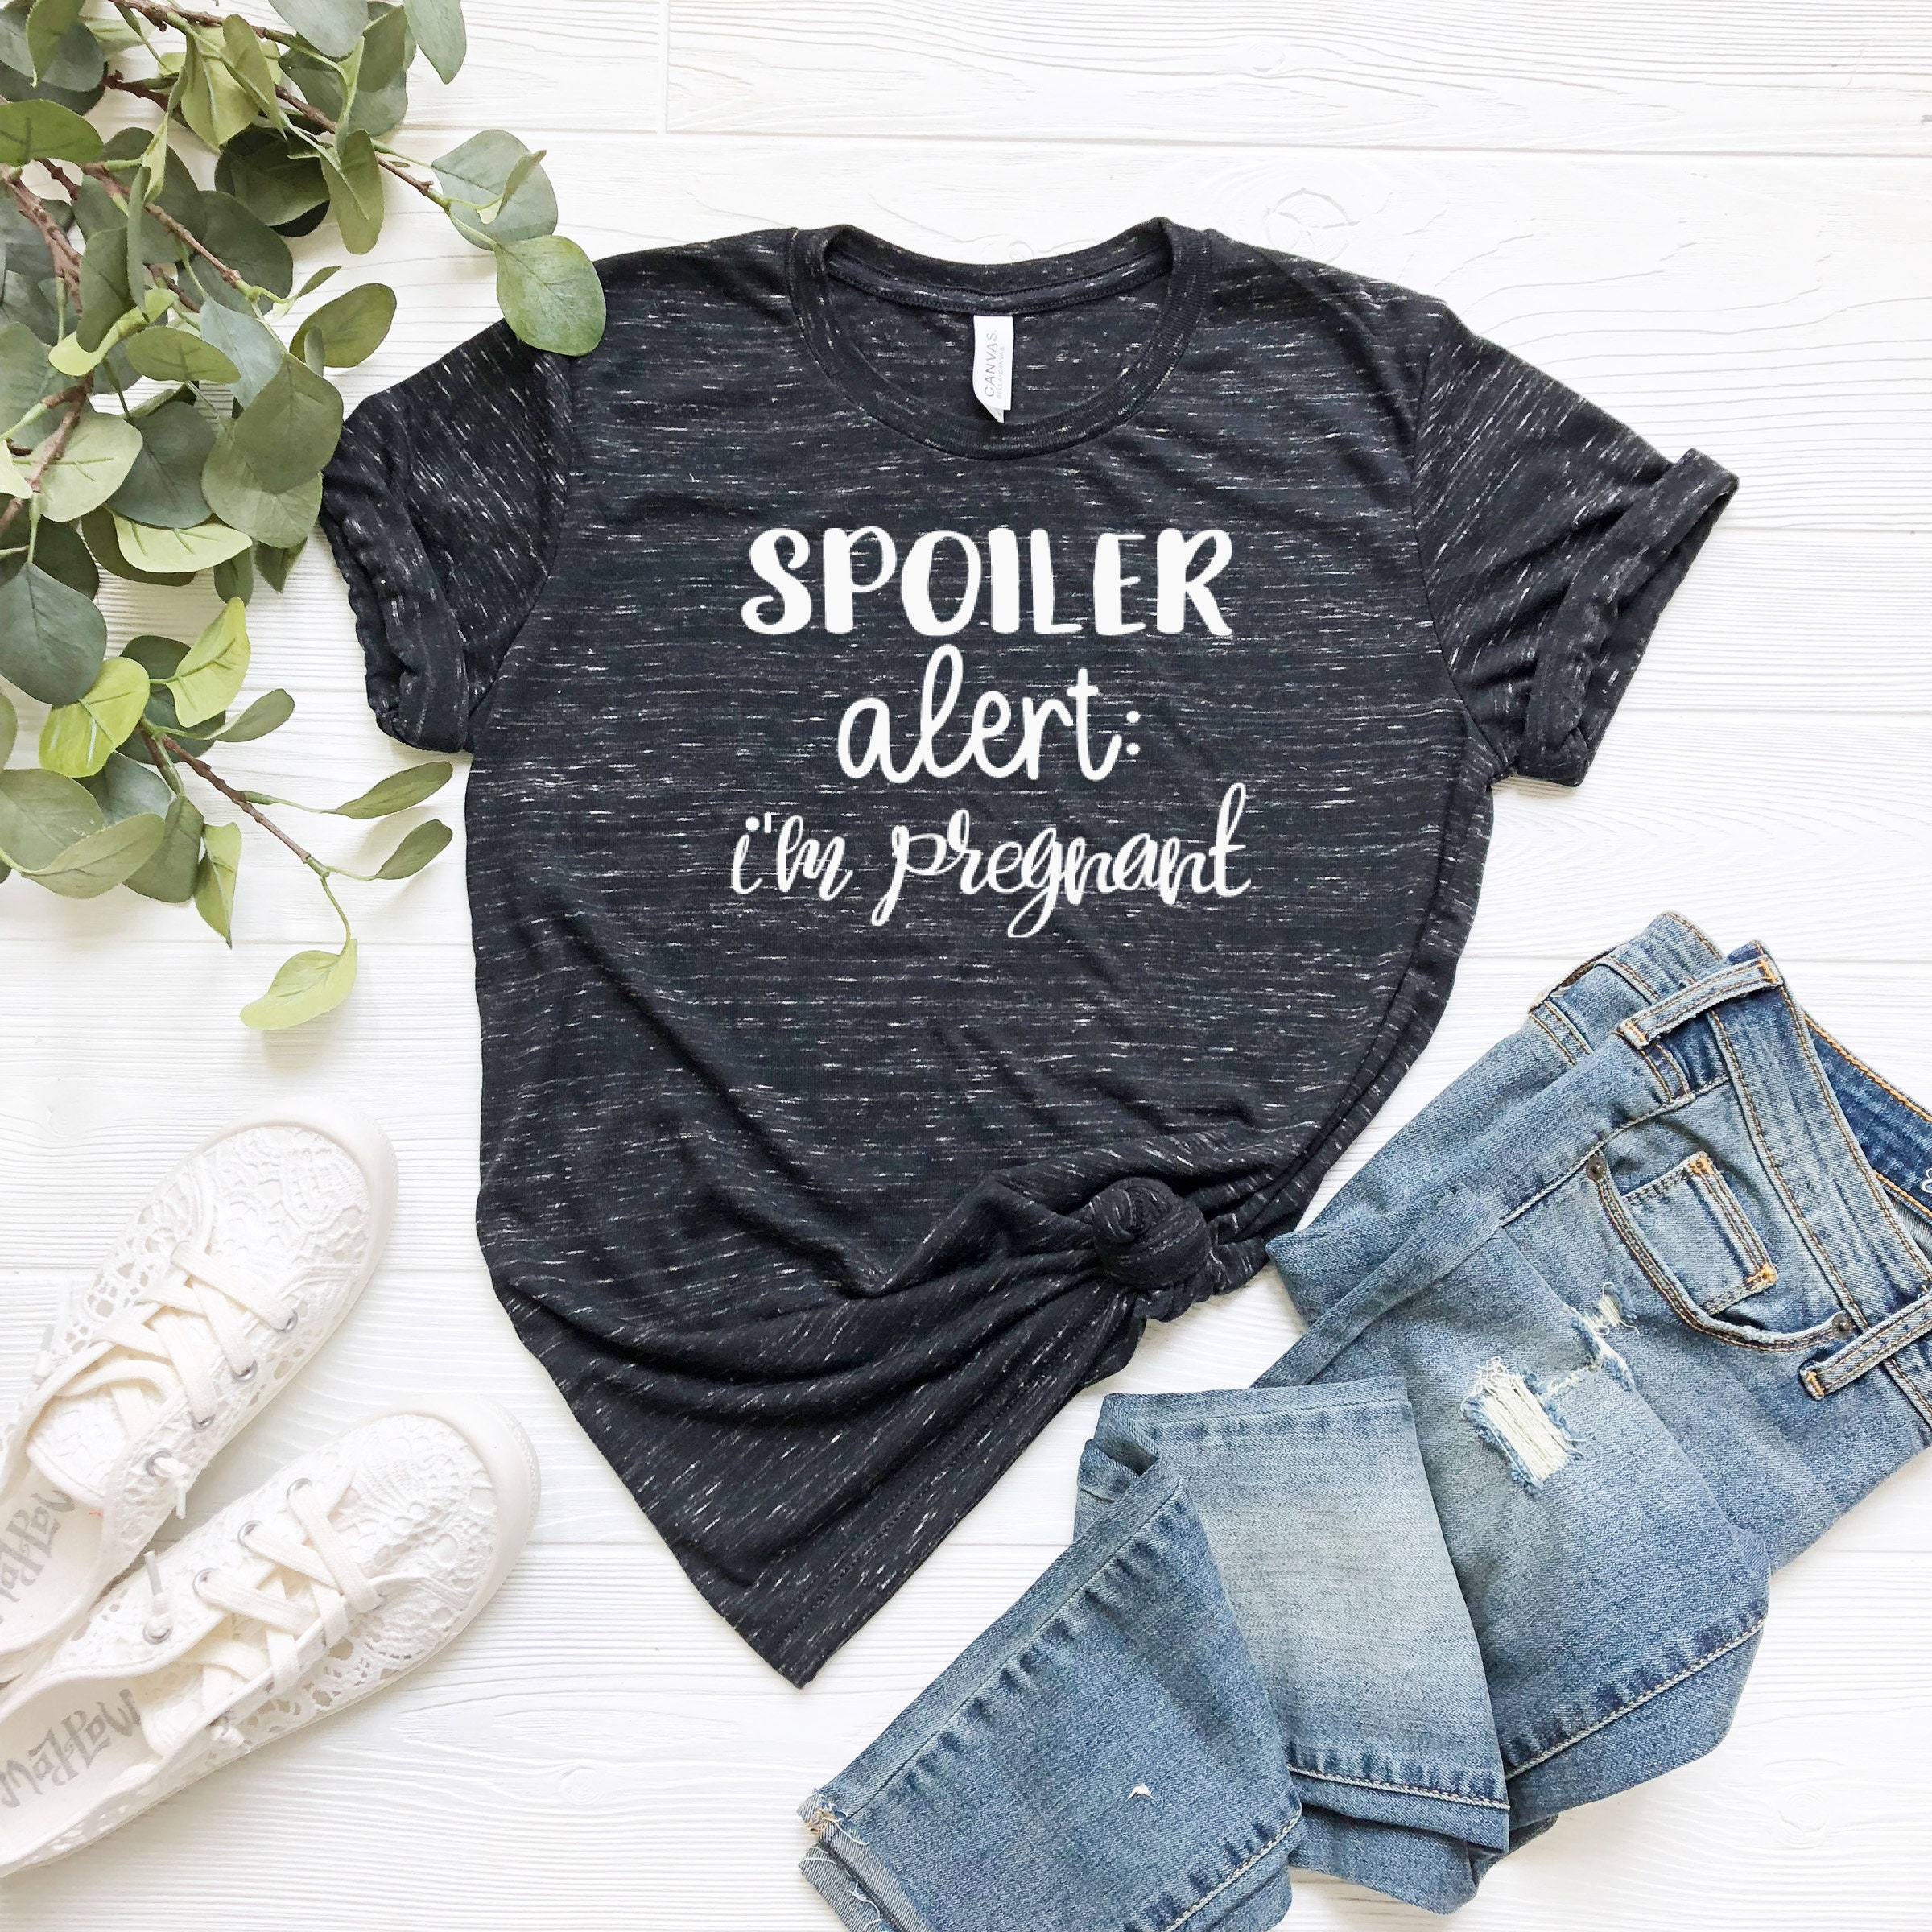 26578f5c6 Where Can I Get Funny Maternity Shirts - DREAMWORKS